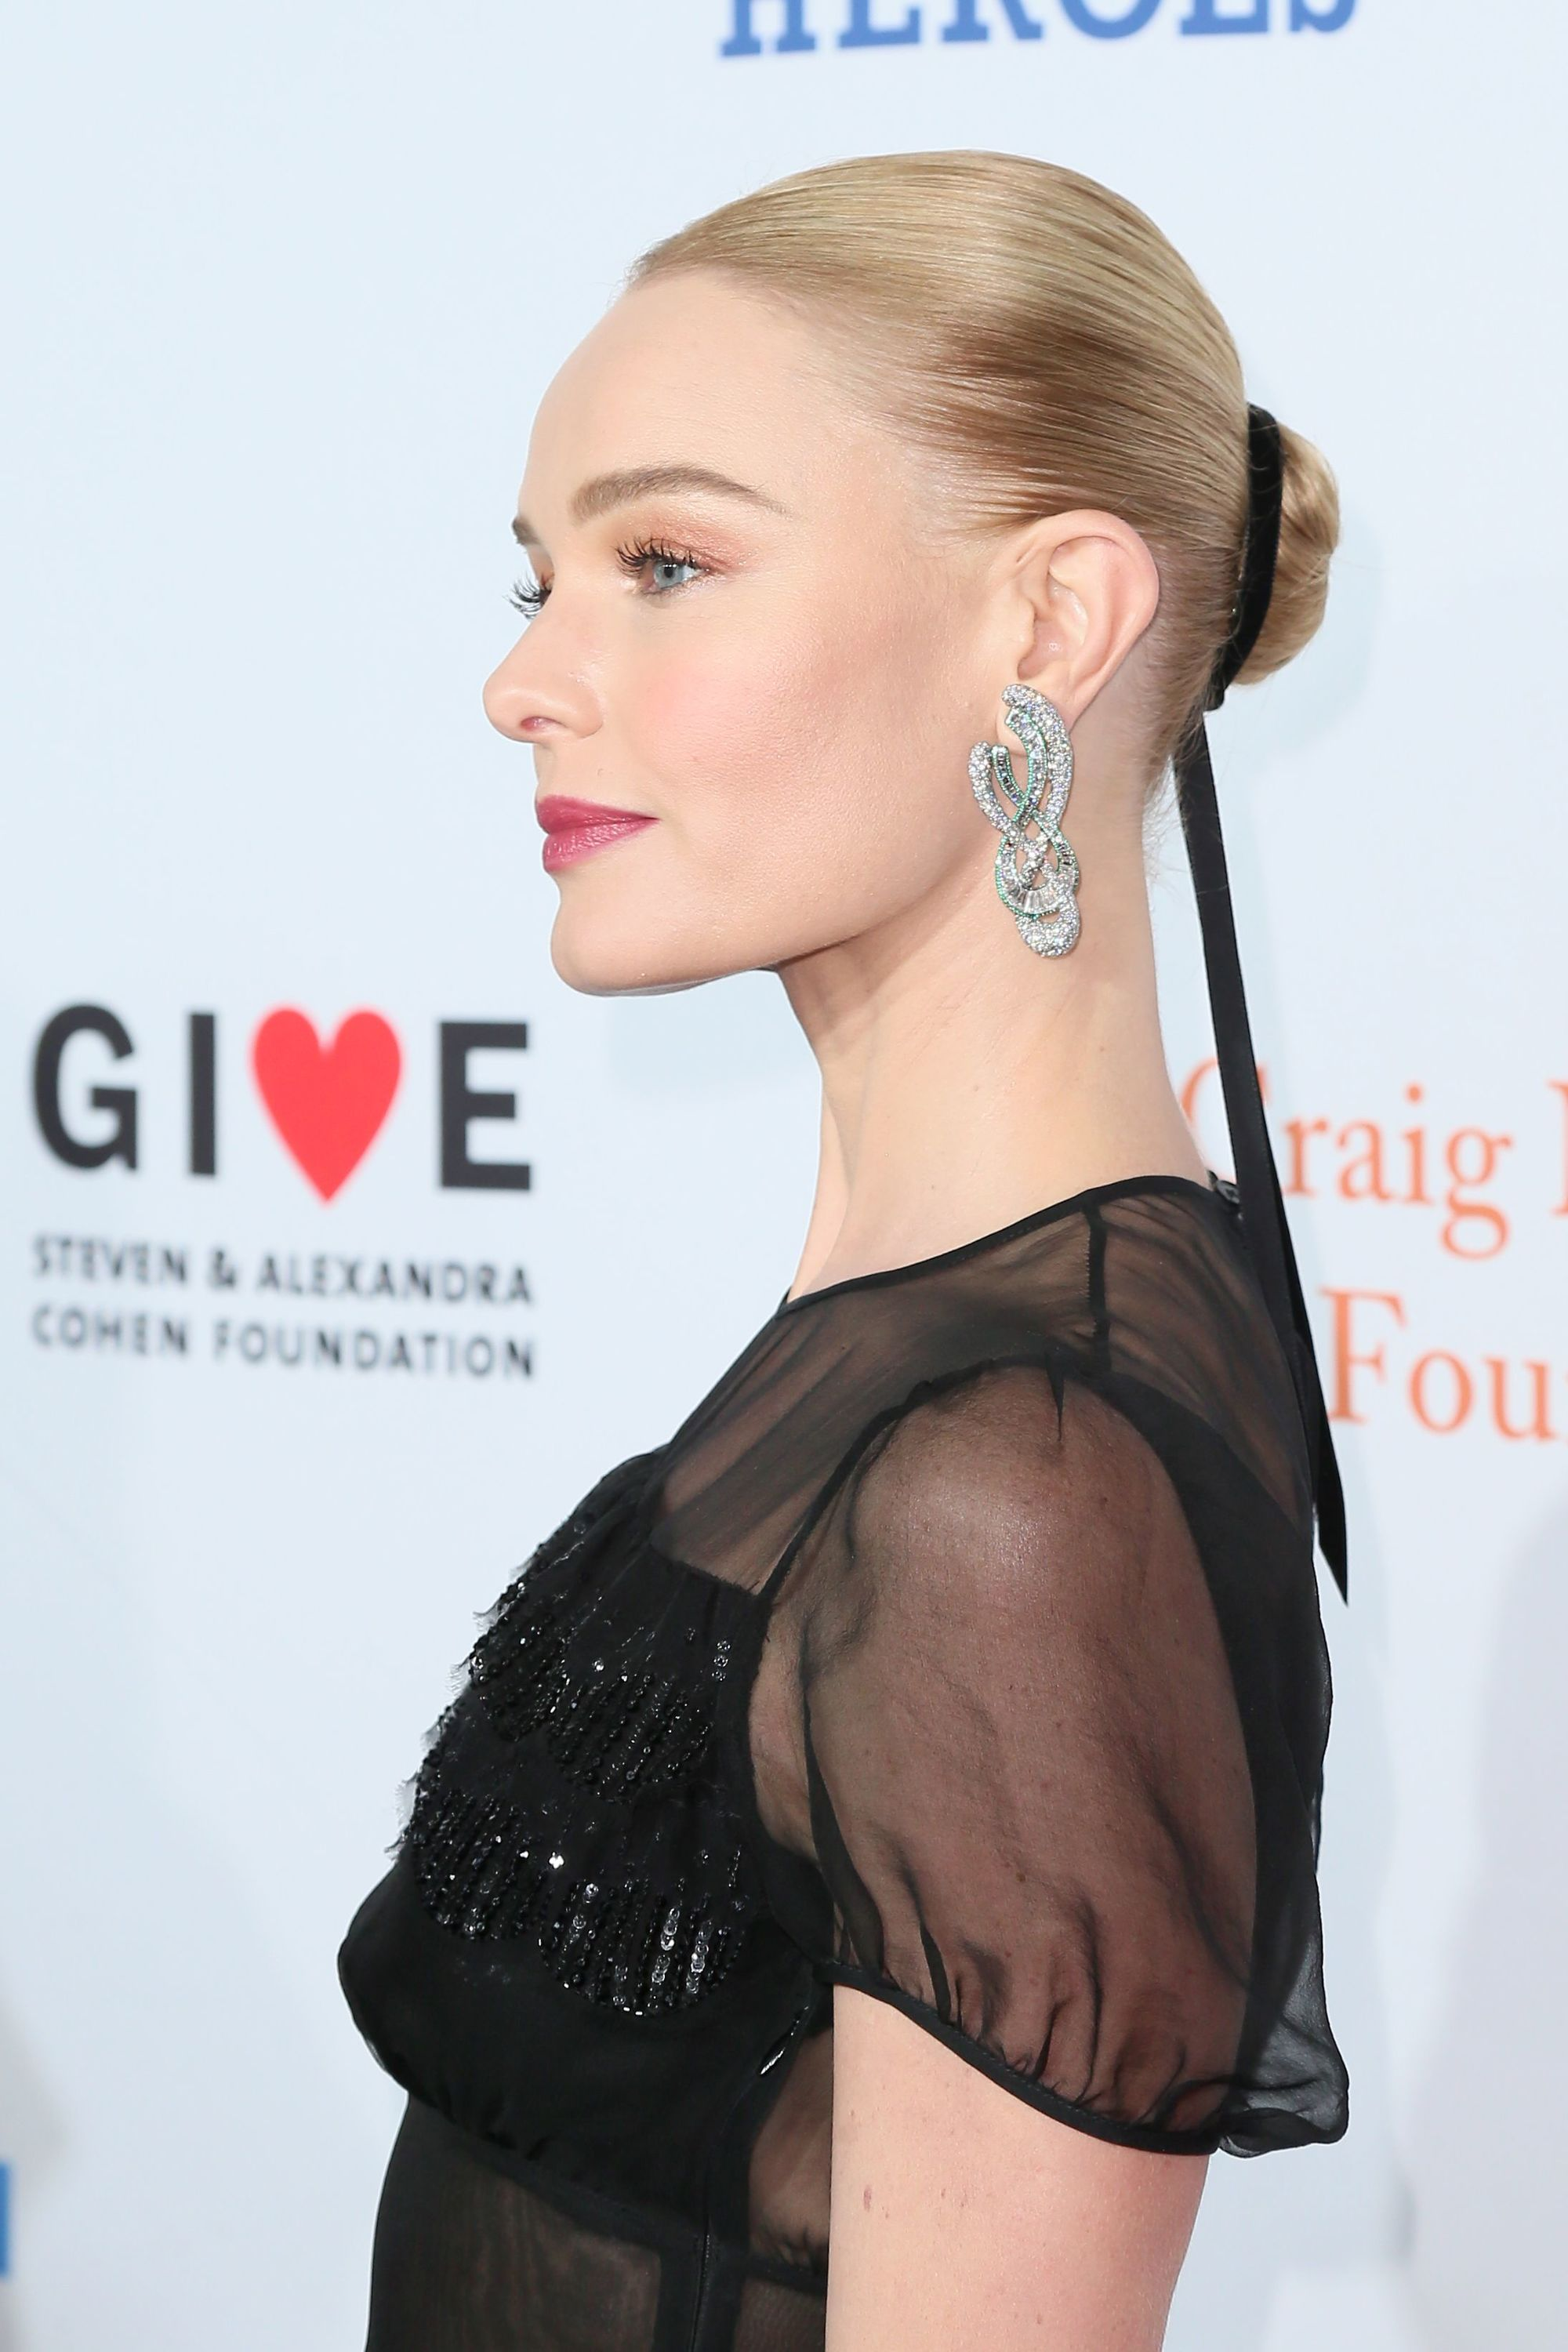 close up shot of kate bosworth with sleek short hair, wearing a ribbon hair accessory and posing on the red carpet